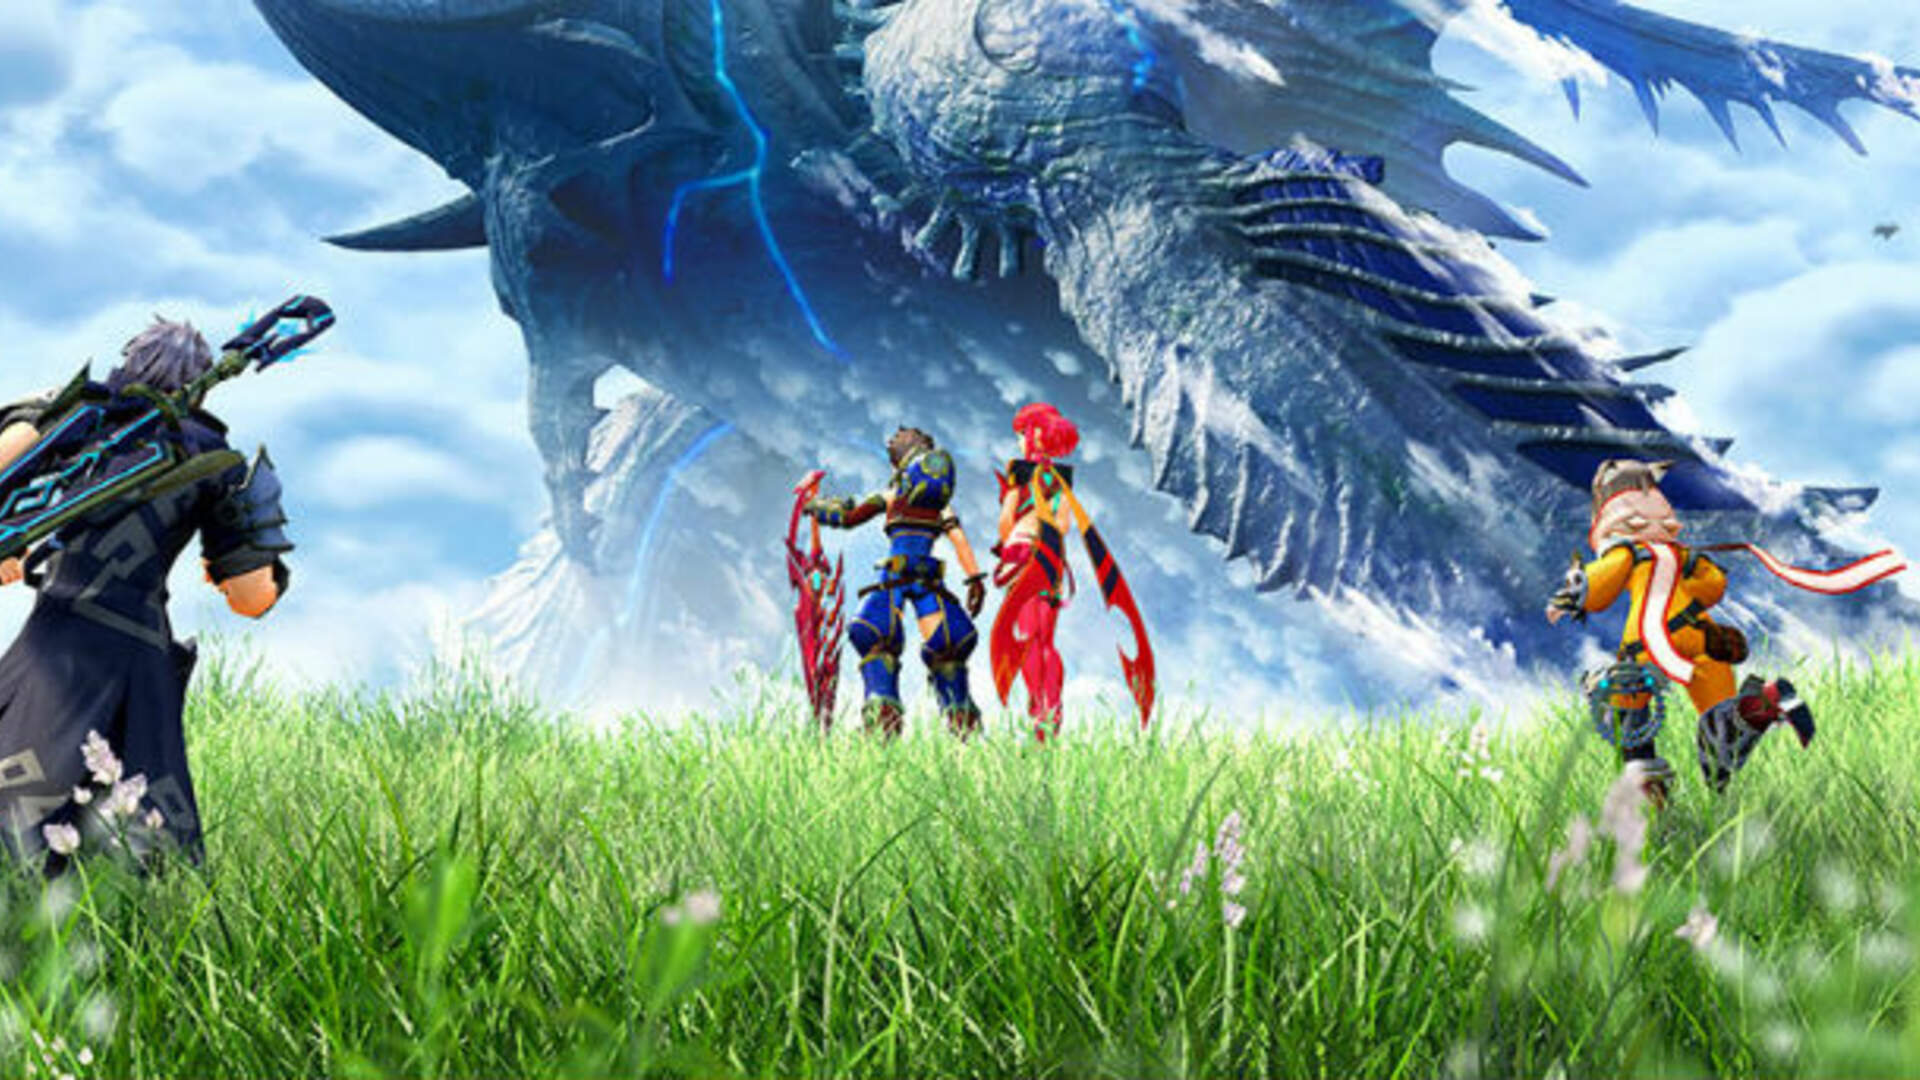 Xenoblade Chronicles 2 Review: An RPG With the Heart and Soul of a Titan